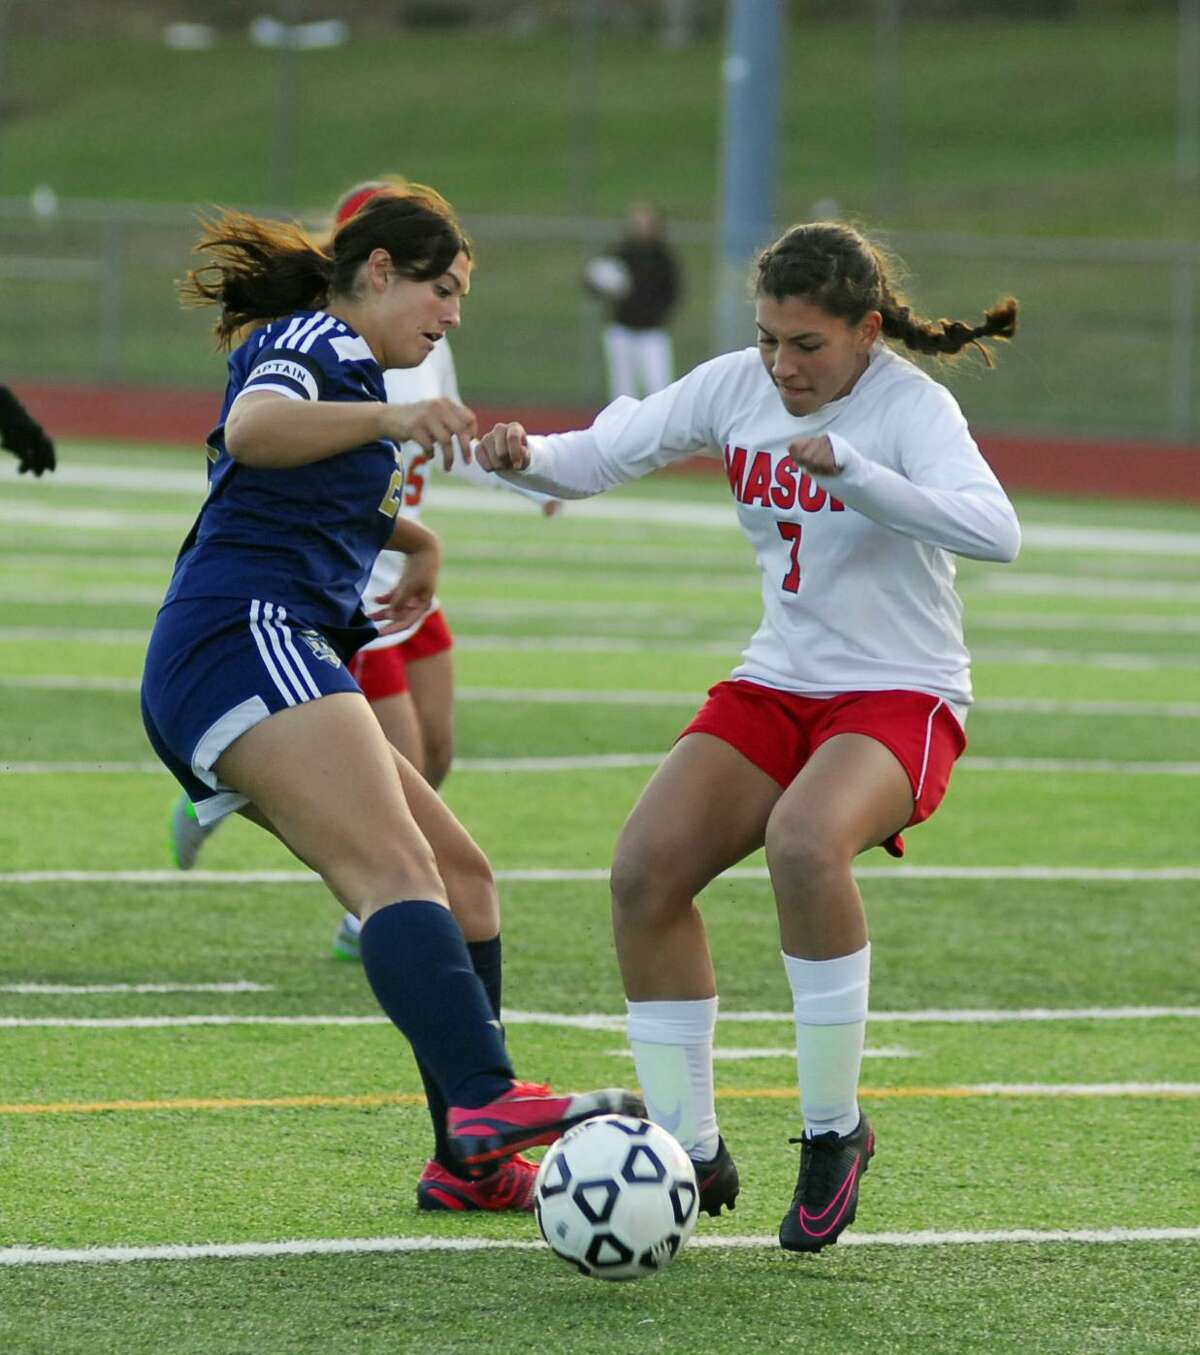 Action from the SWC girls soccer semifinal between Masuk and Notre Dame-Fairfield on Tuesday, November 1st, 2016.